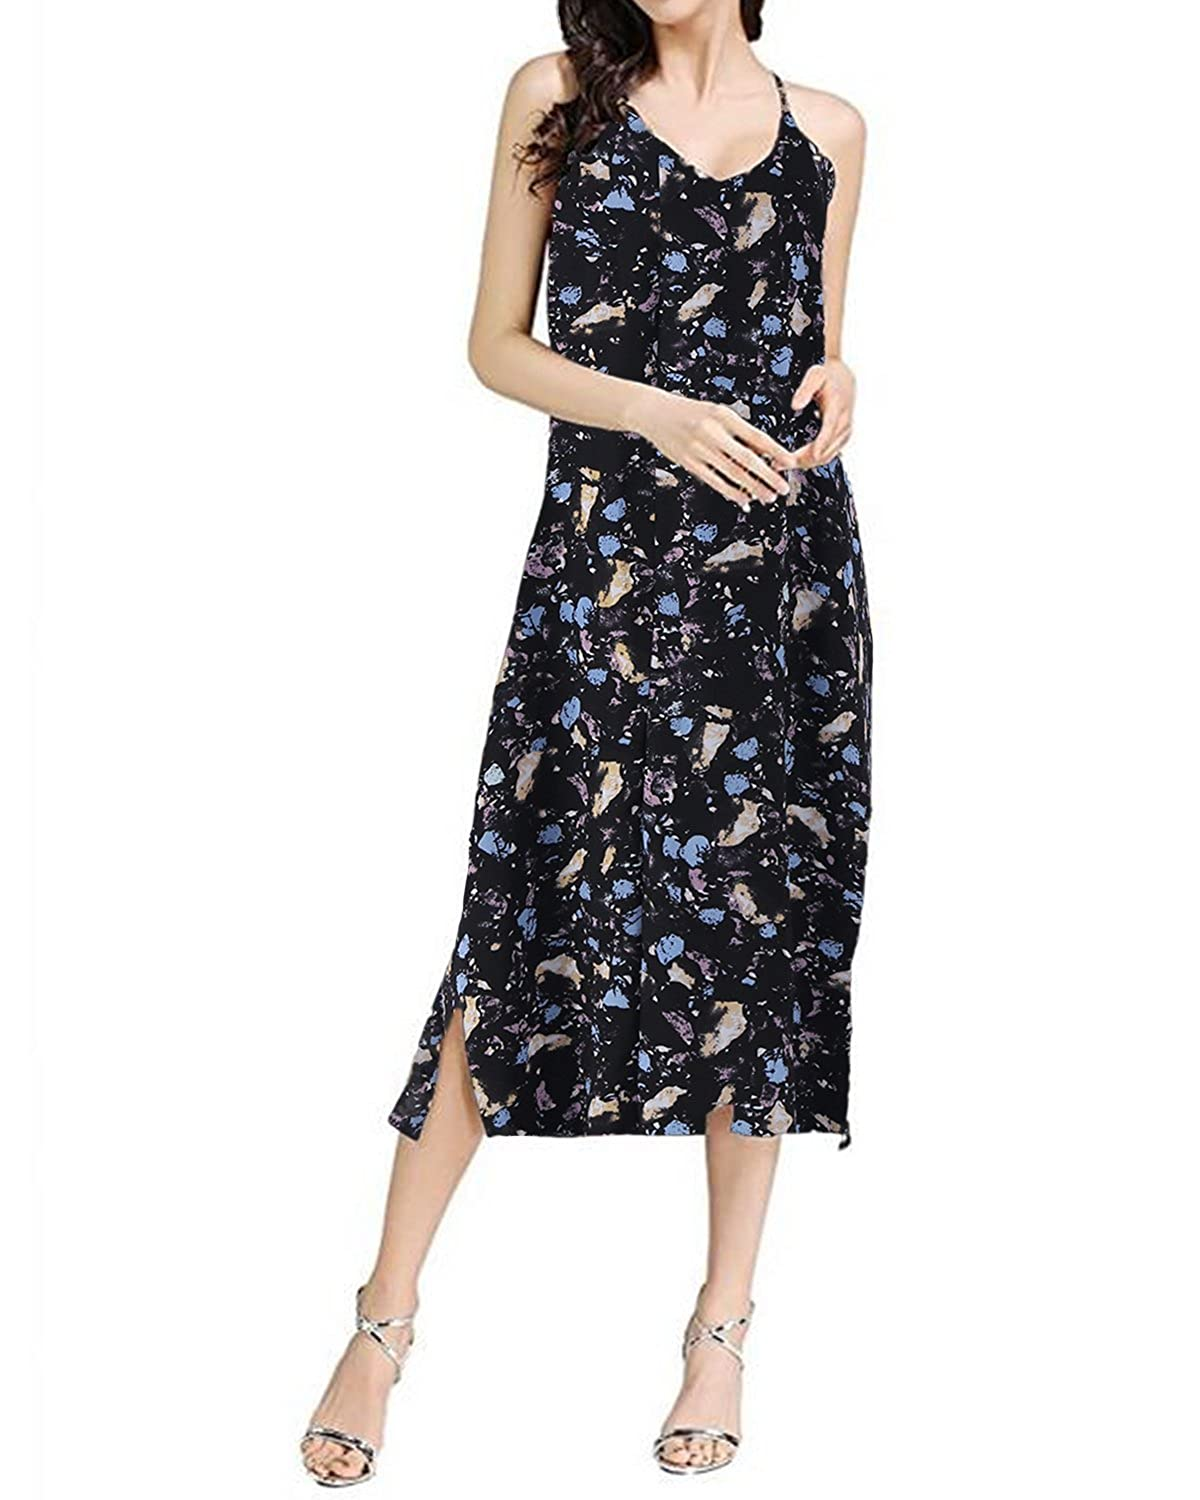 47201ffc1b27c Soft Material ] : Polyester, Women Floral Irregular Long Maxi Dress Was  Made of High Quality And Stretchy Fabric, Breathable,  Skin-friendly,Lightweight And ...